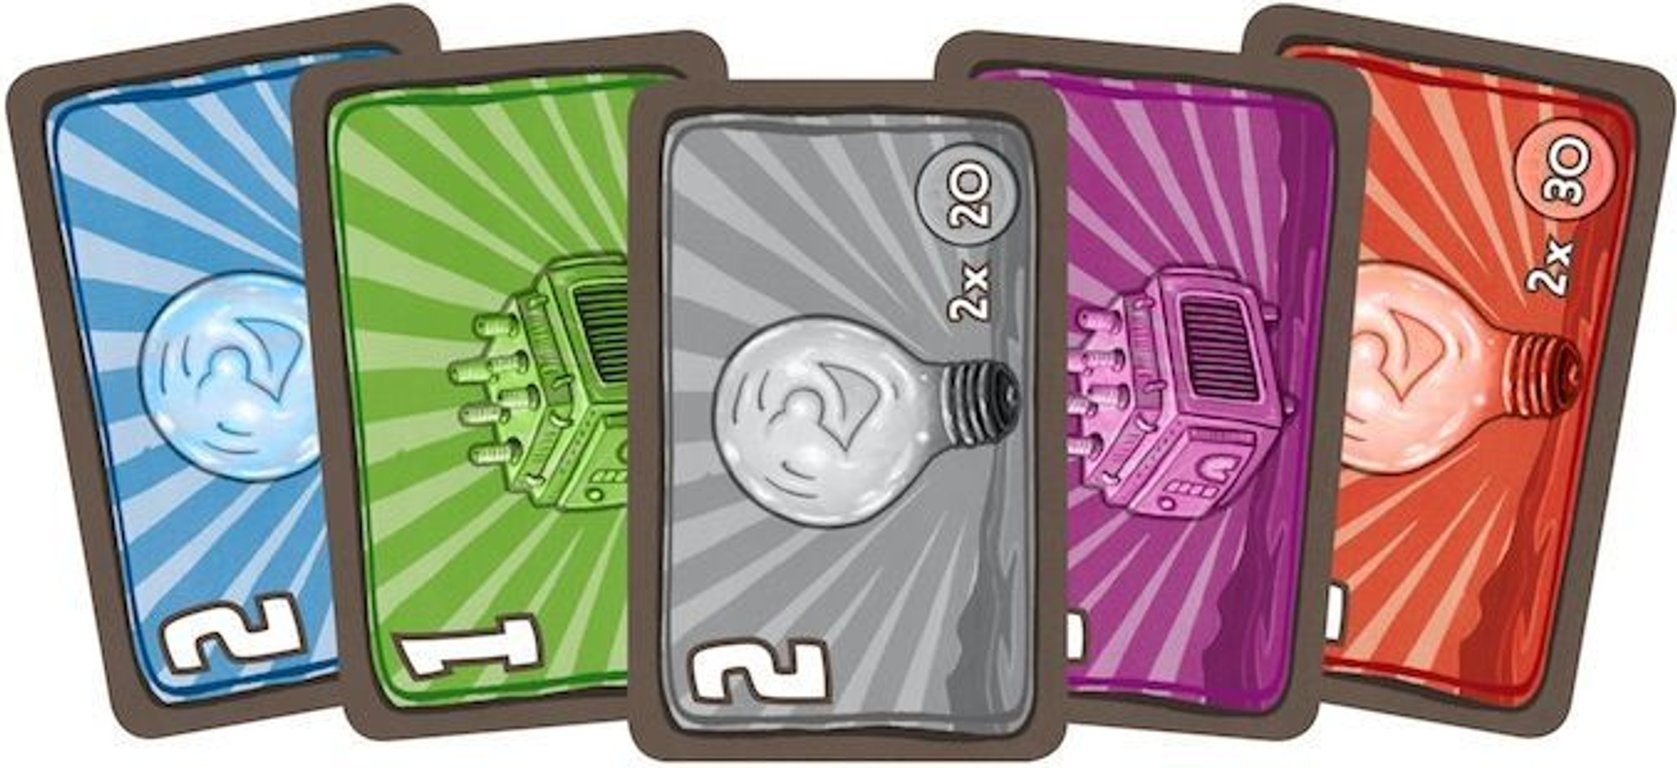 Power Grid: The Stock Companies cards